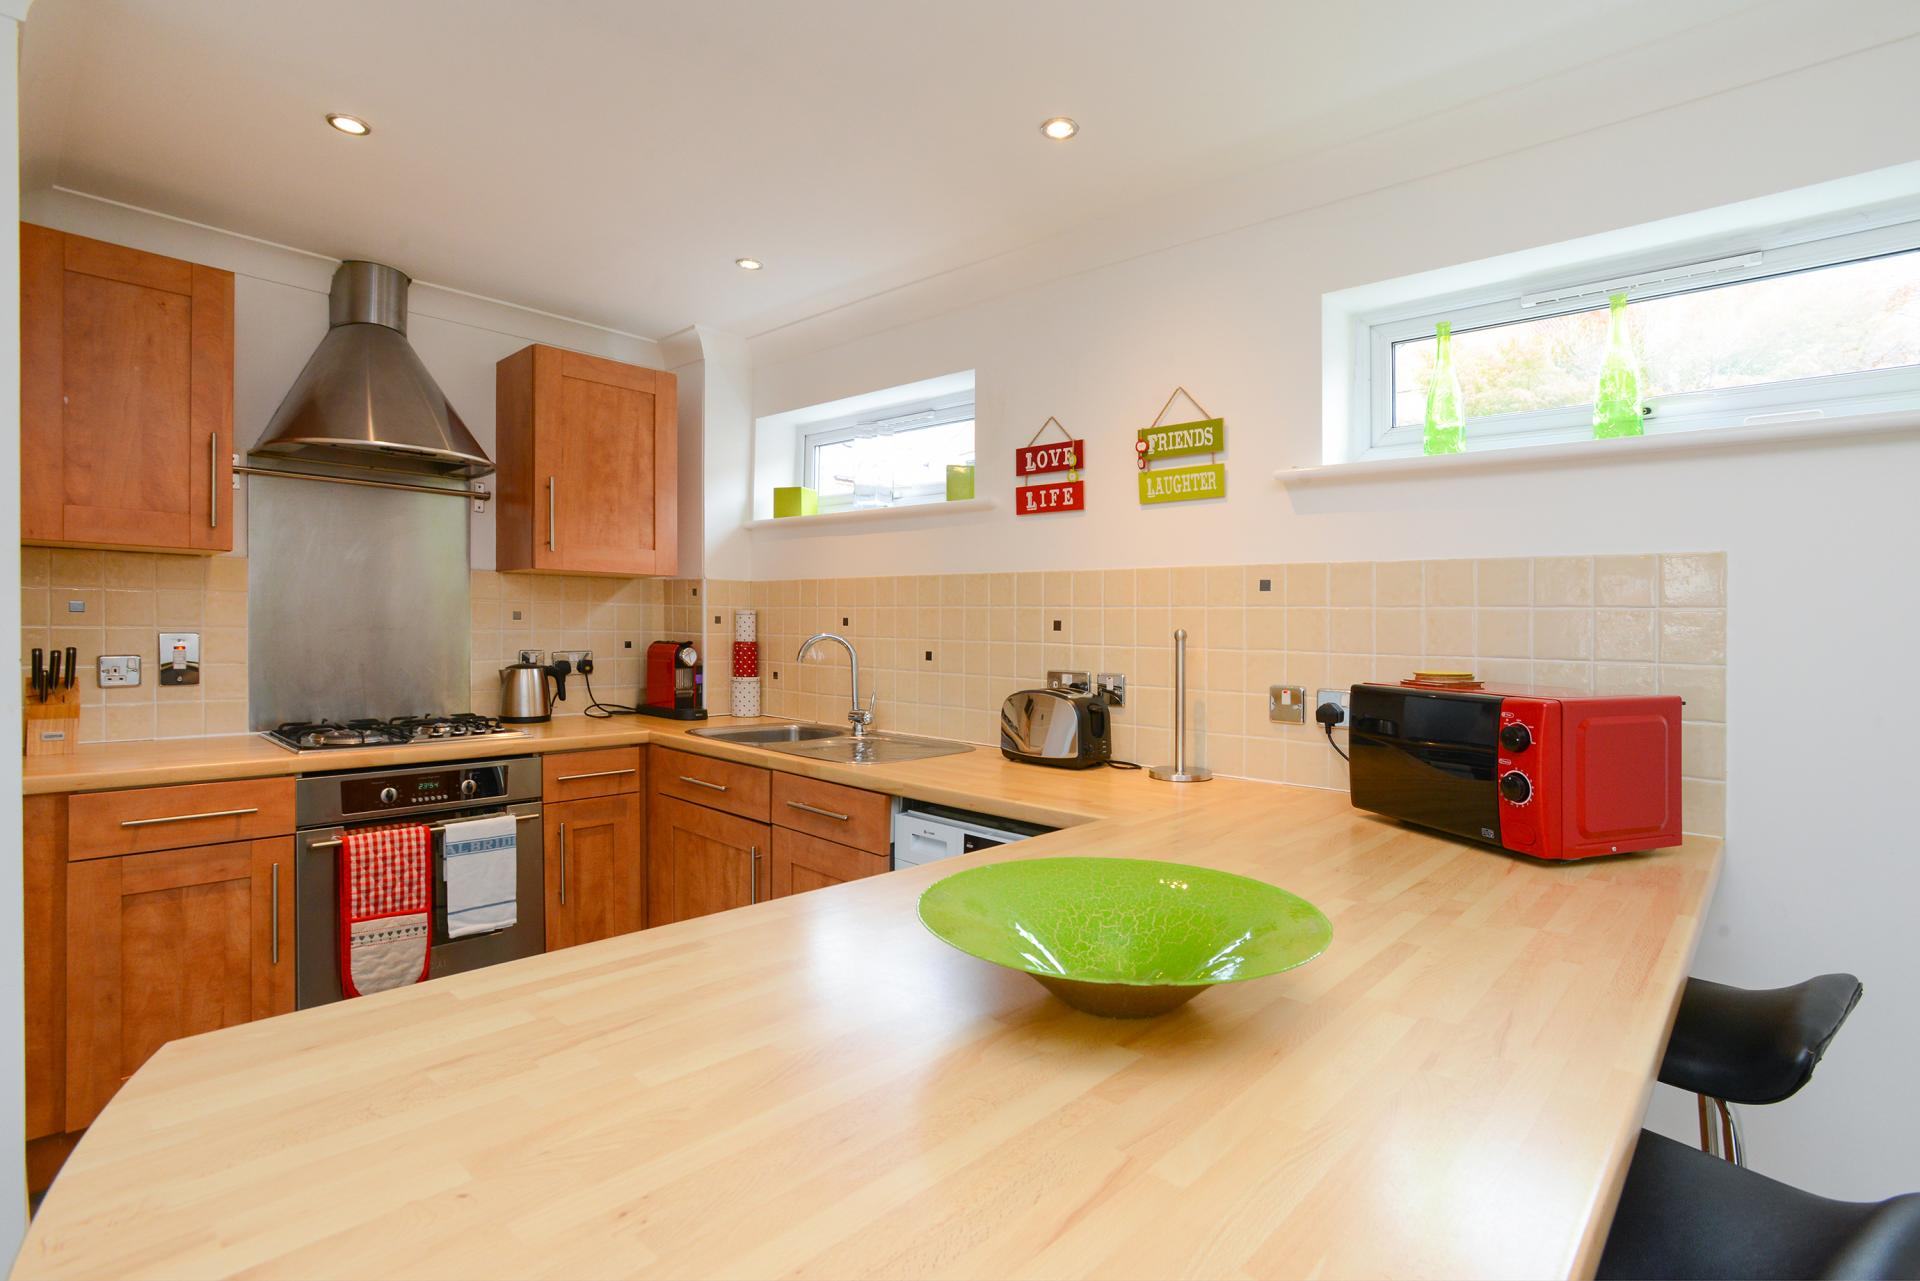 Kitchen at Edward's Court Apartment, West Bridgford, Nottingham - Citybase Apartments